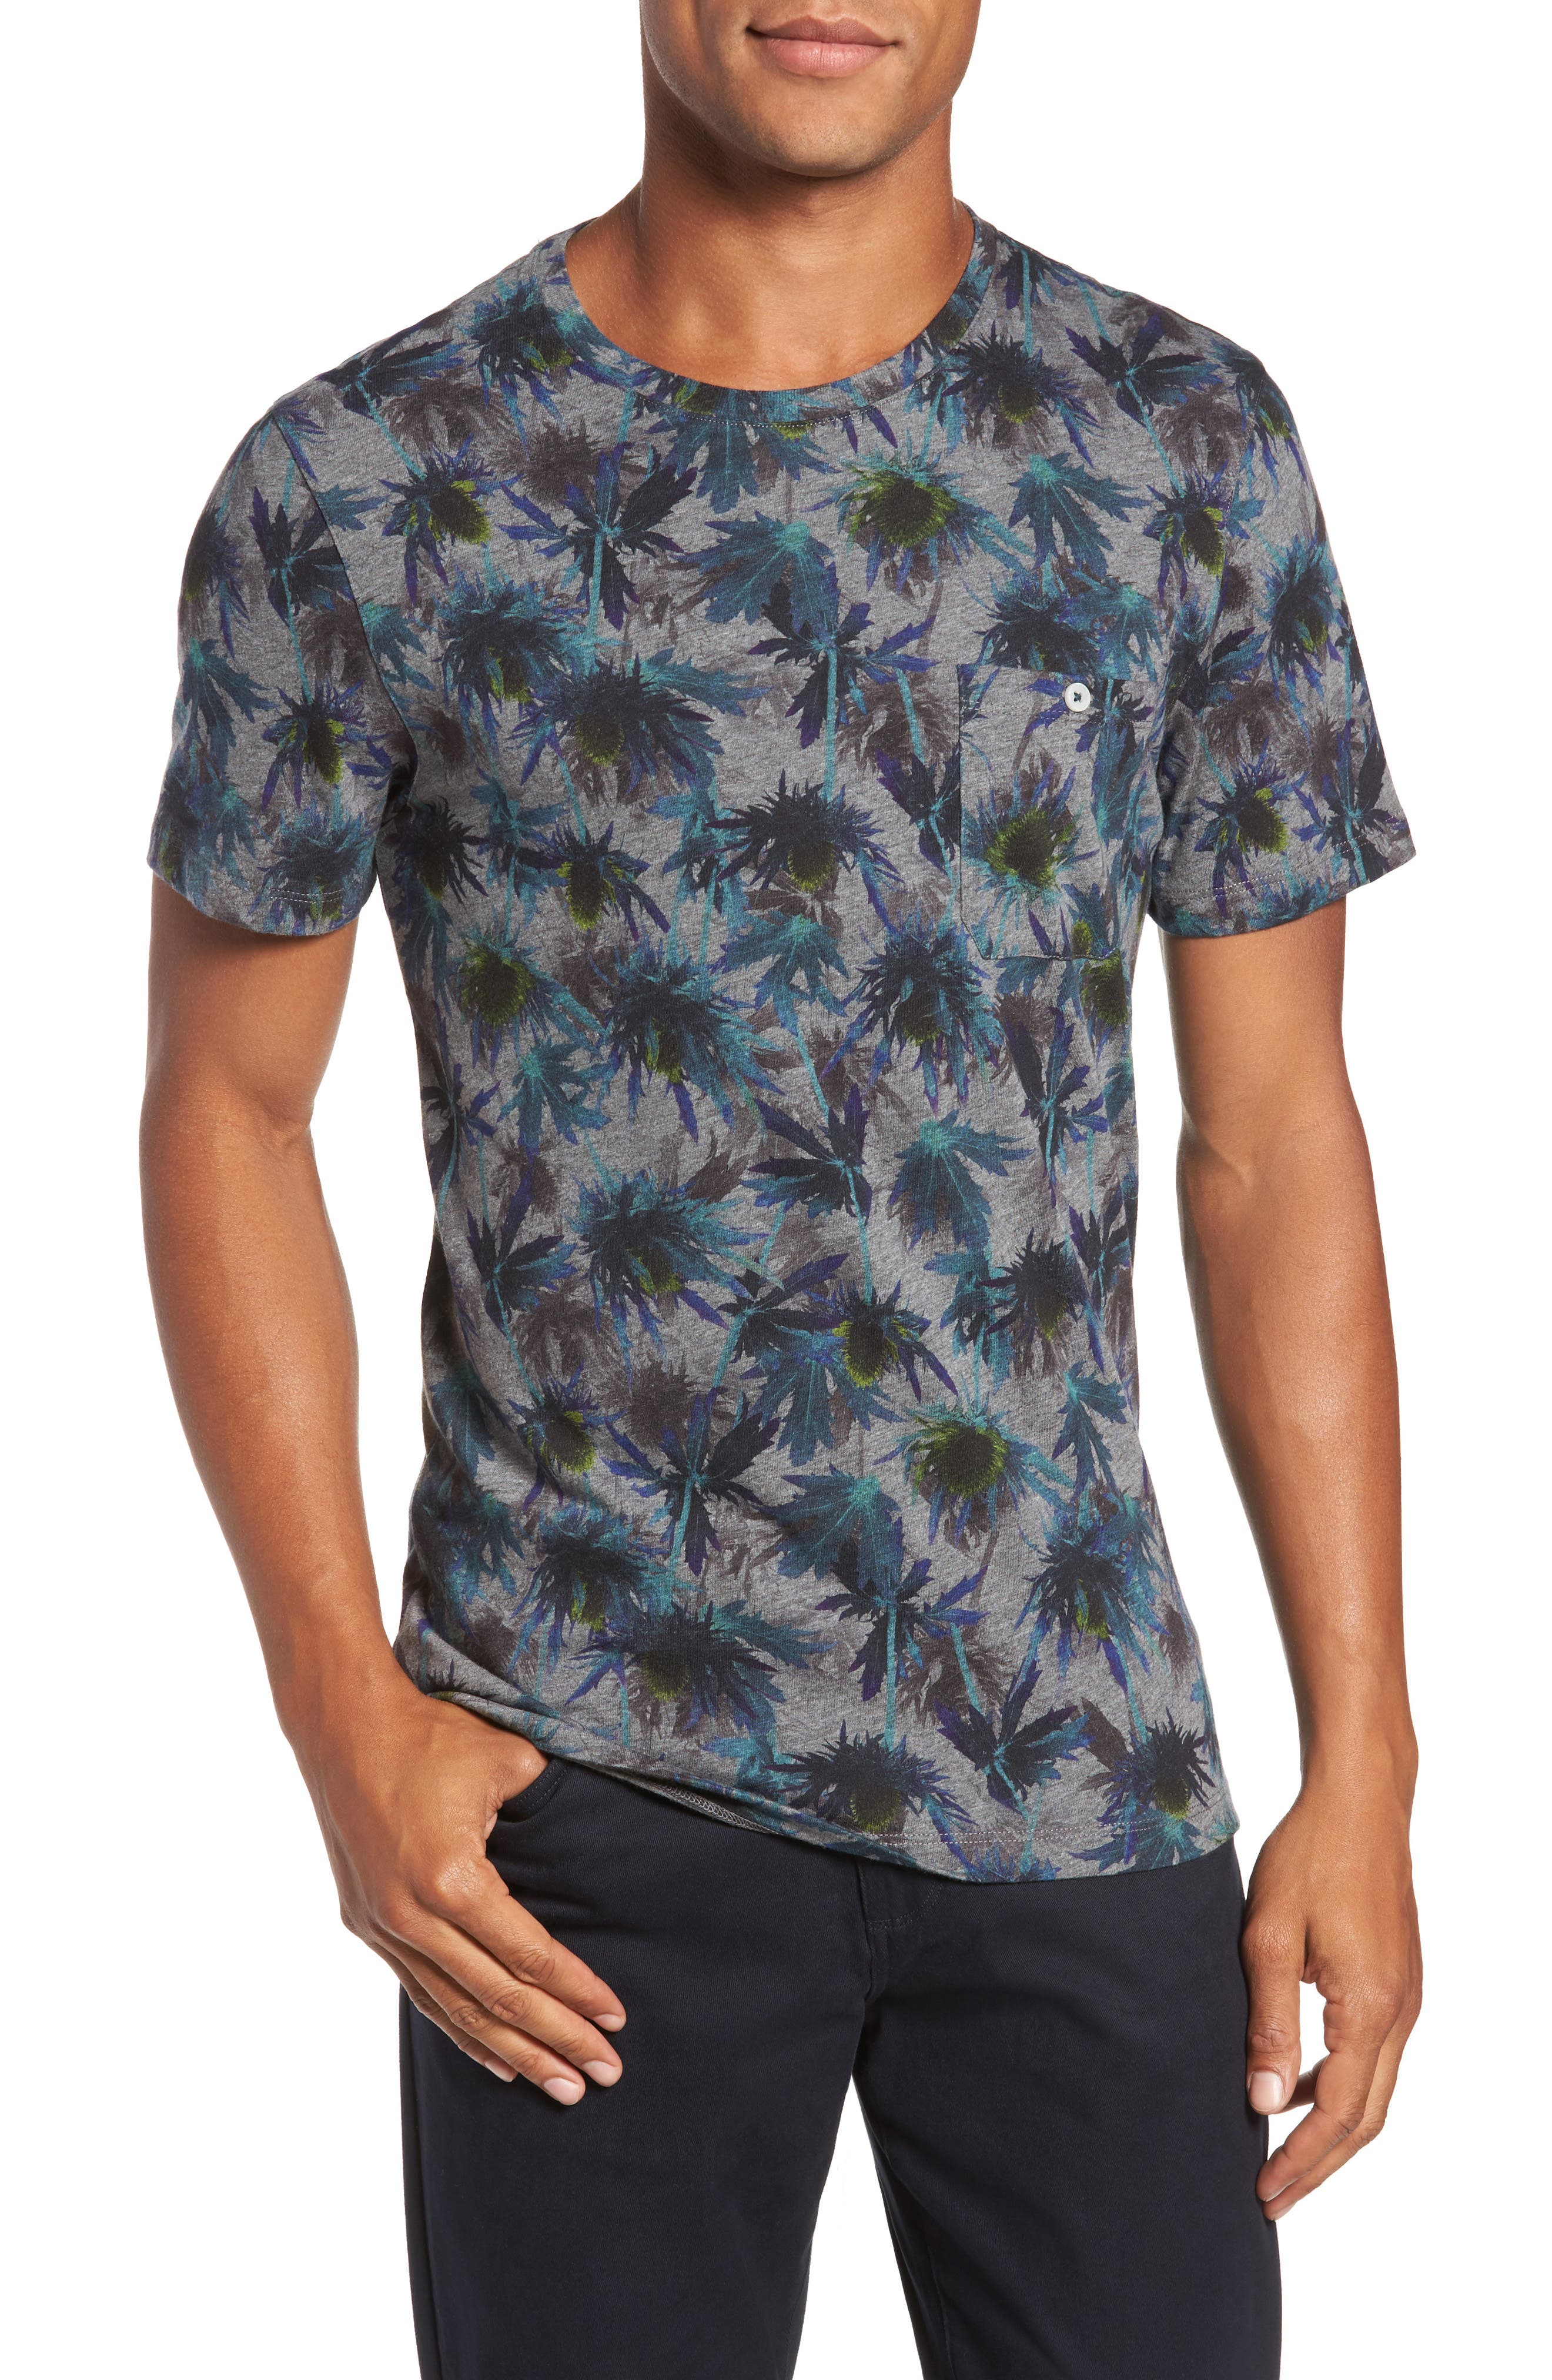 Katatak Thistle Print T-Shirt,                             Main thumbnail 1, color,                             030